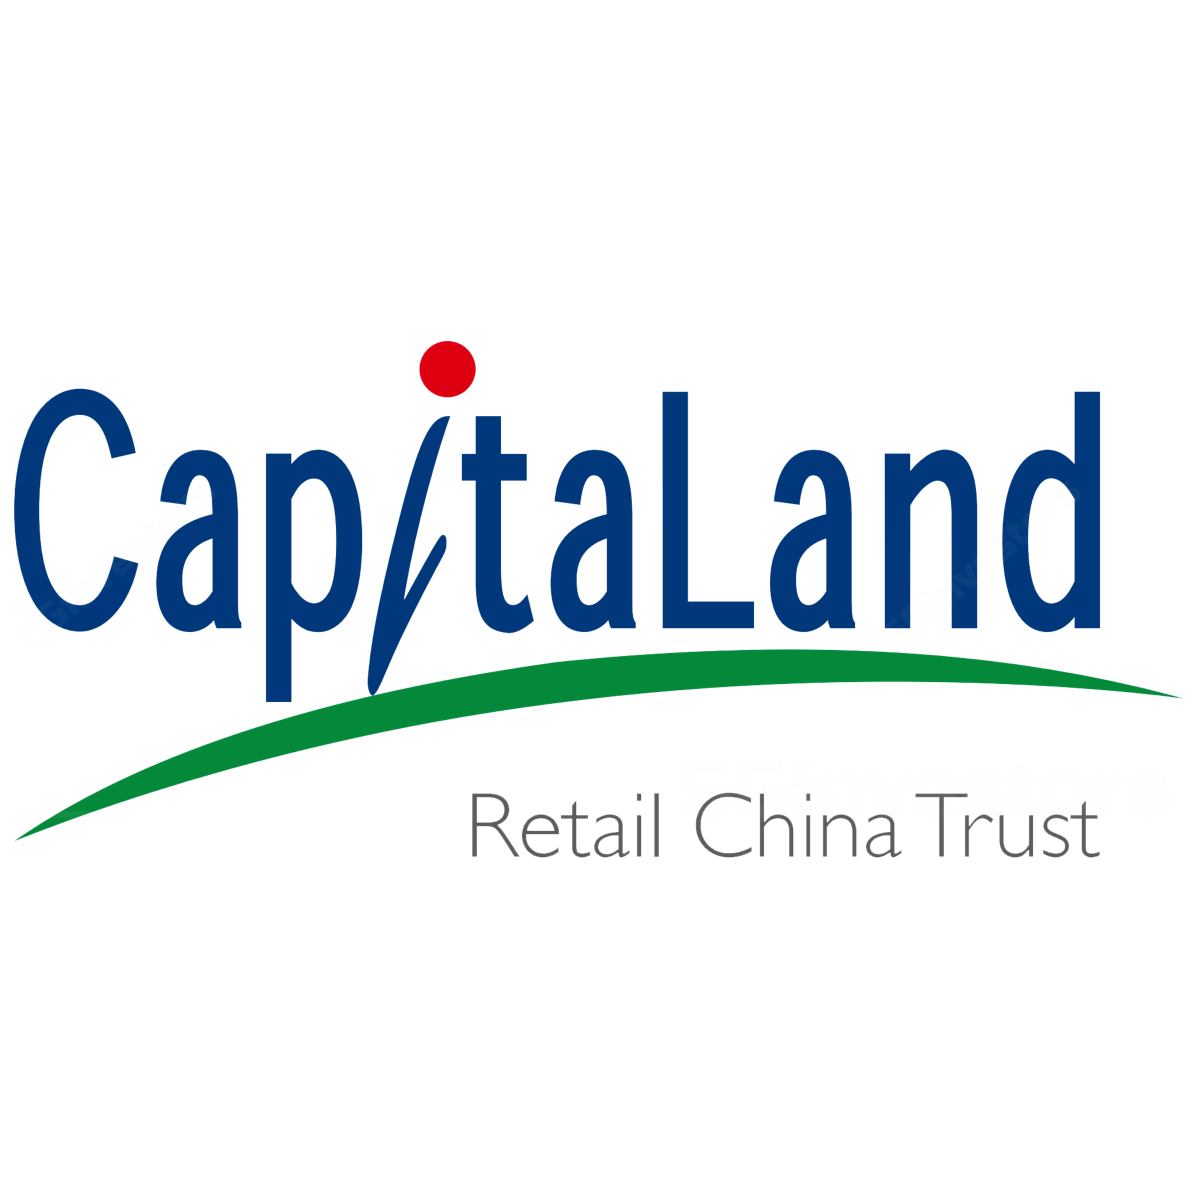 CapitaLand Retail China Trust - OCBC Investment 2017-11-30: Acquisition And Private Placement